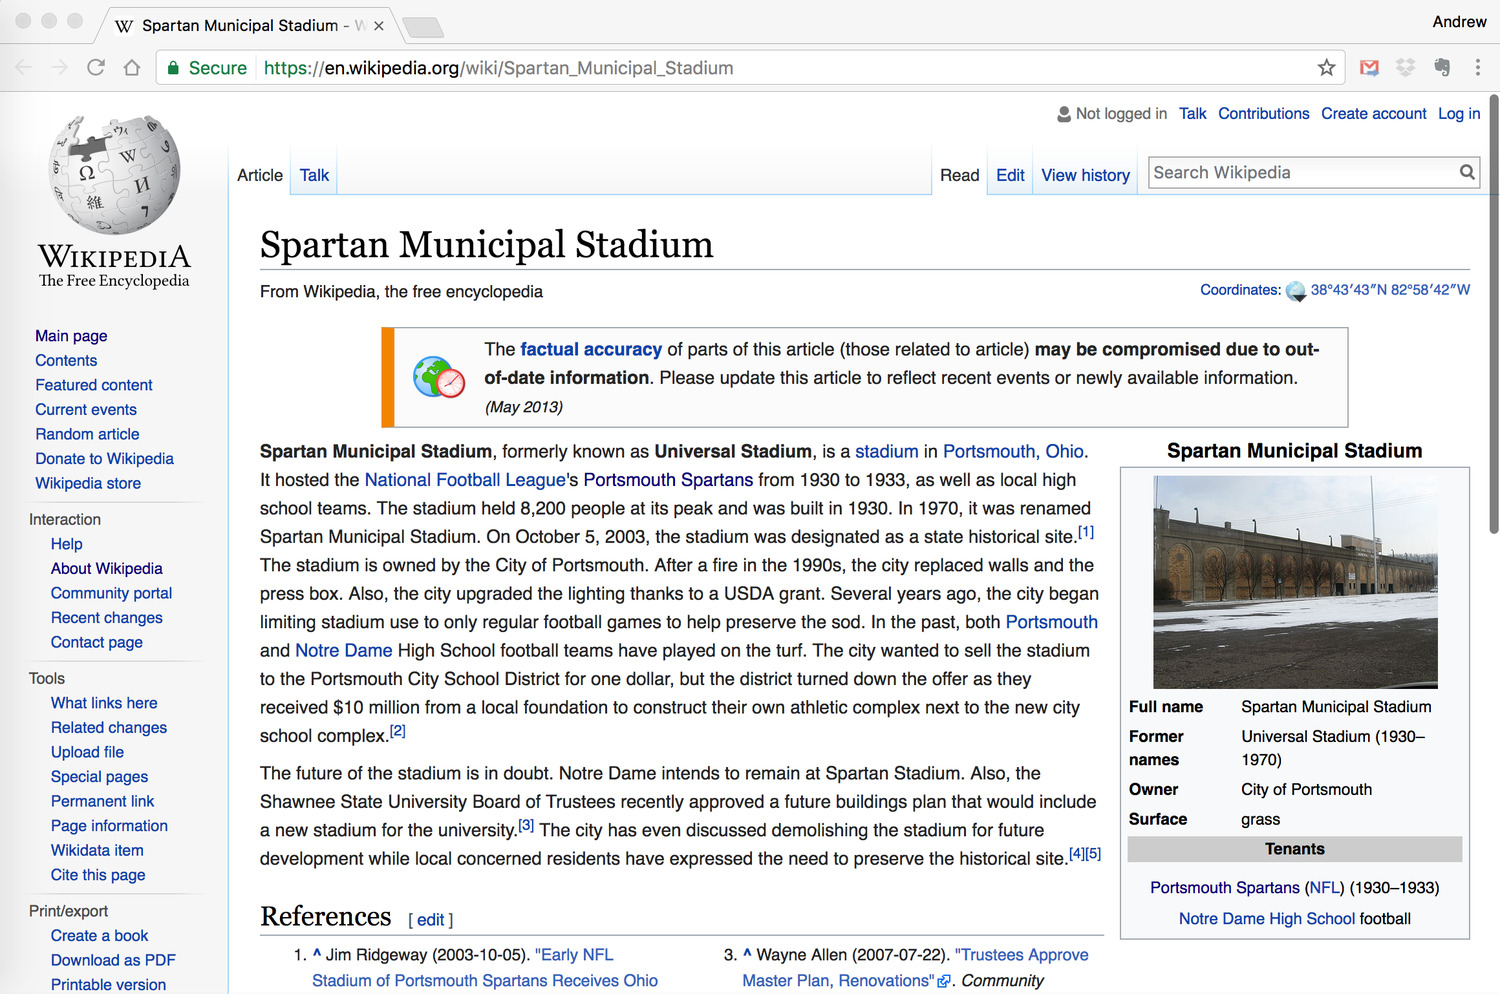 """Screenshot of the Wikipedia entry for """"Spartan Municipal Stadium,"""" as updated to March 5th, 2017."""